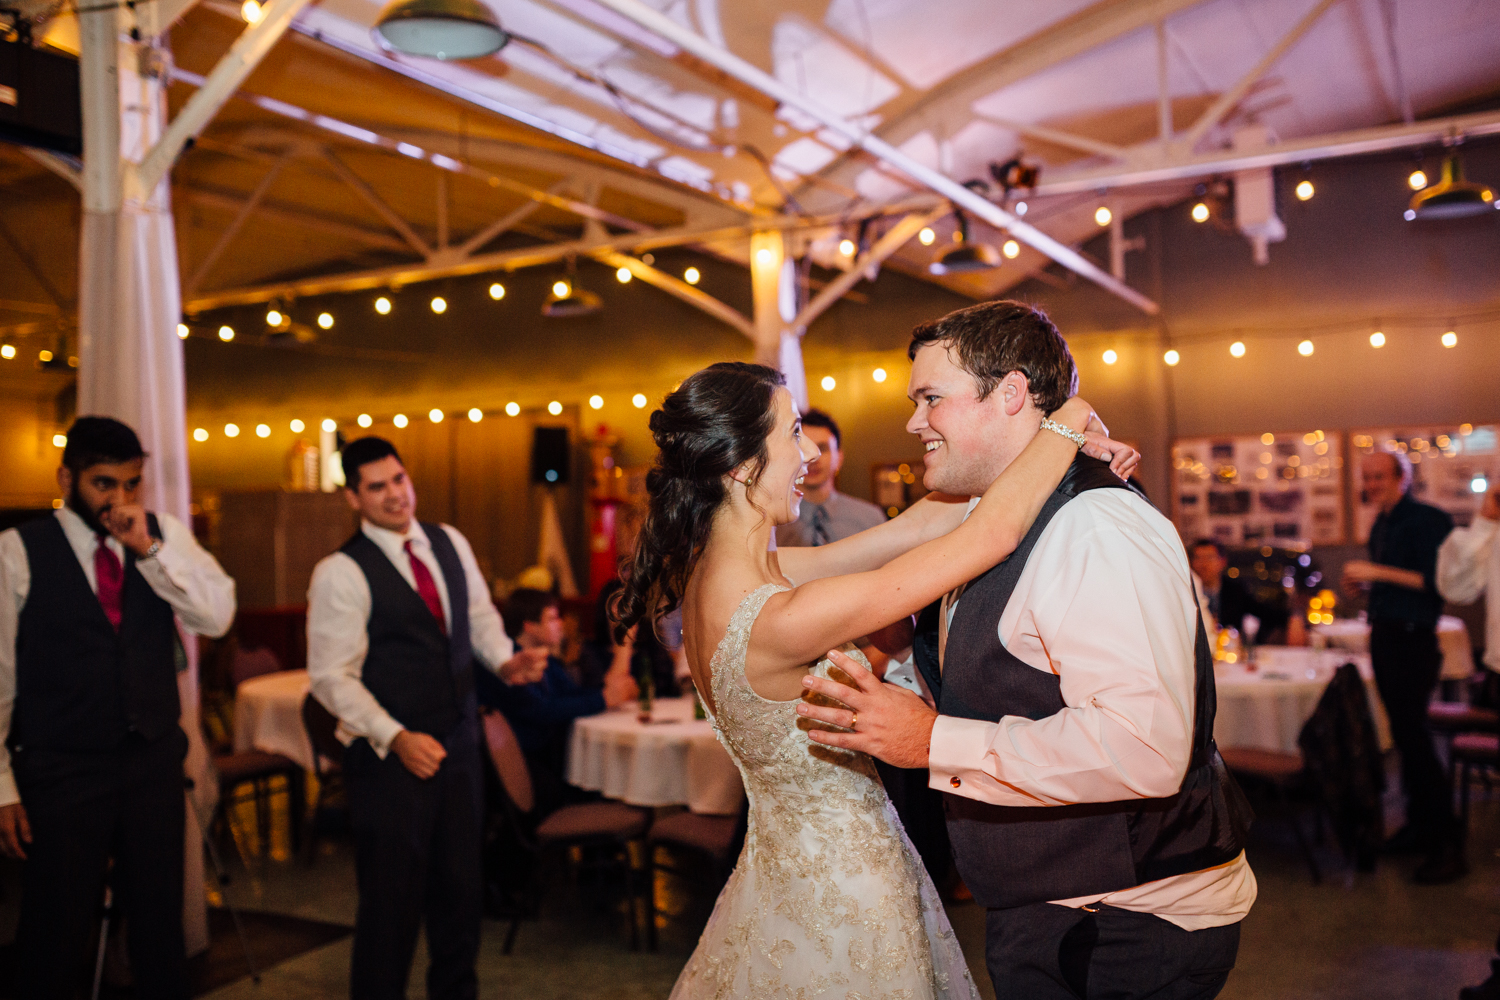 Fun, Intimate Spring Wedding by Corrie Mick Photography-126.jpg